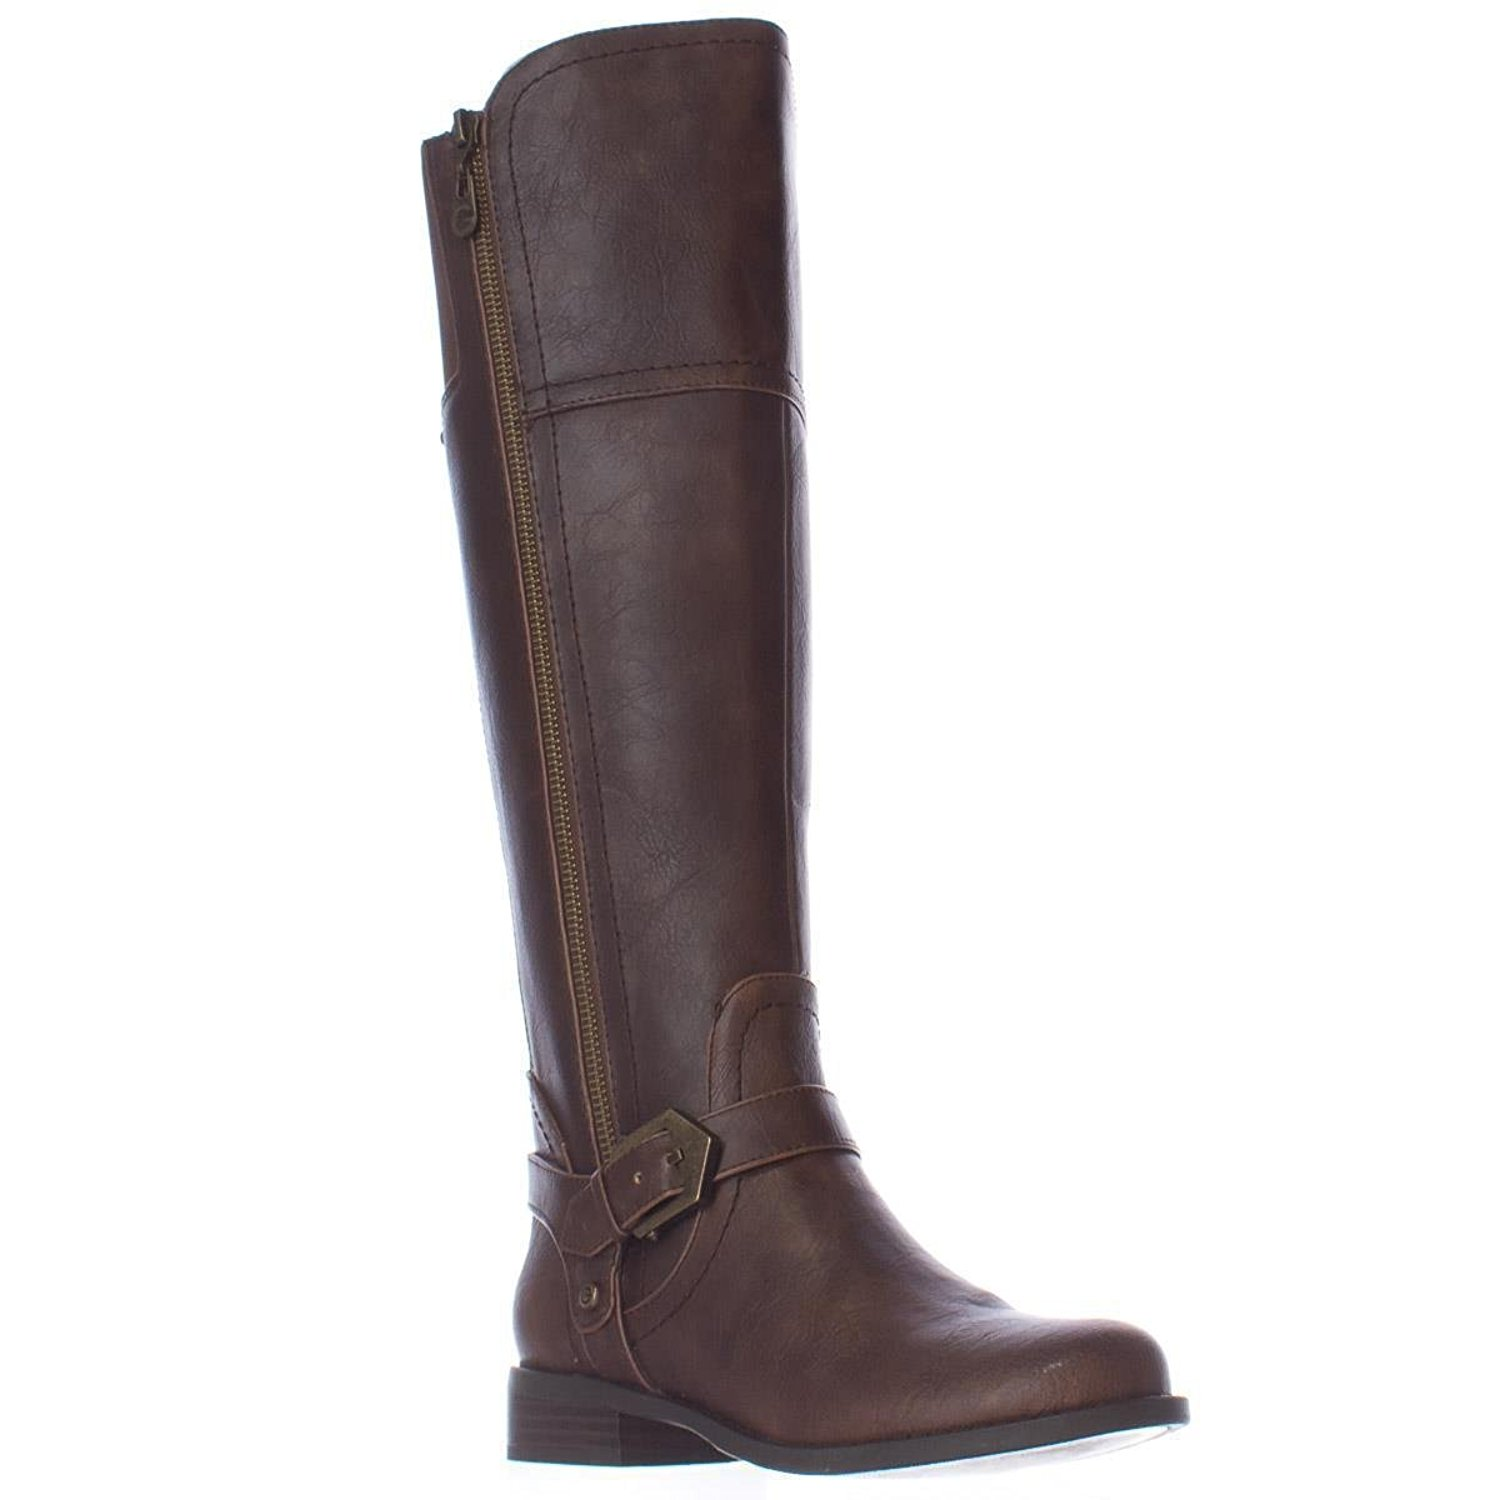 G by Guess Hailee WC Womens Boots Dark Brown SY 7  US   5 UK M